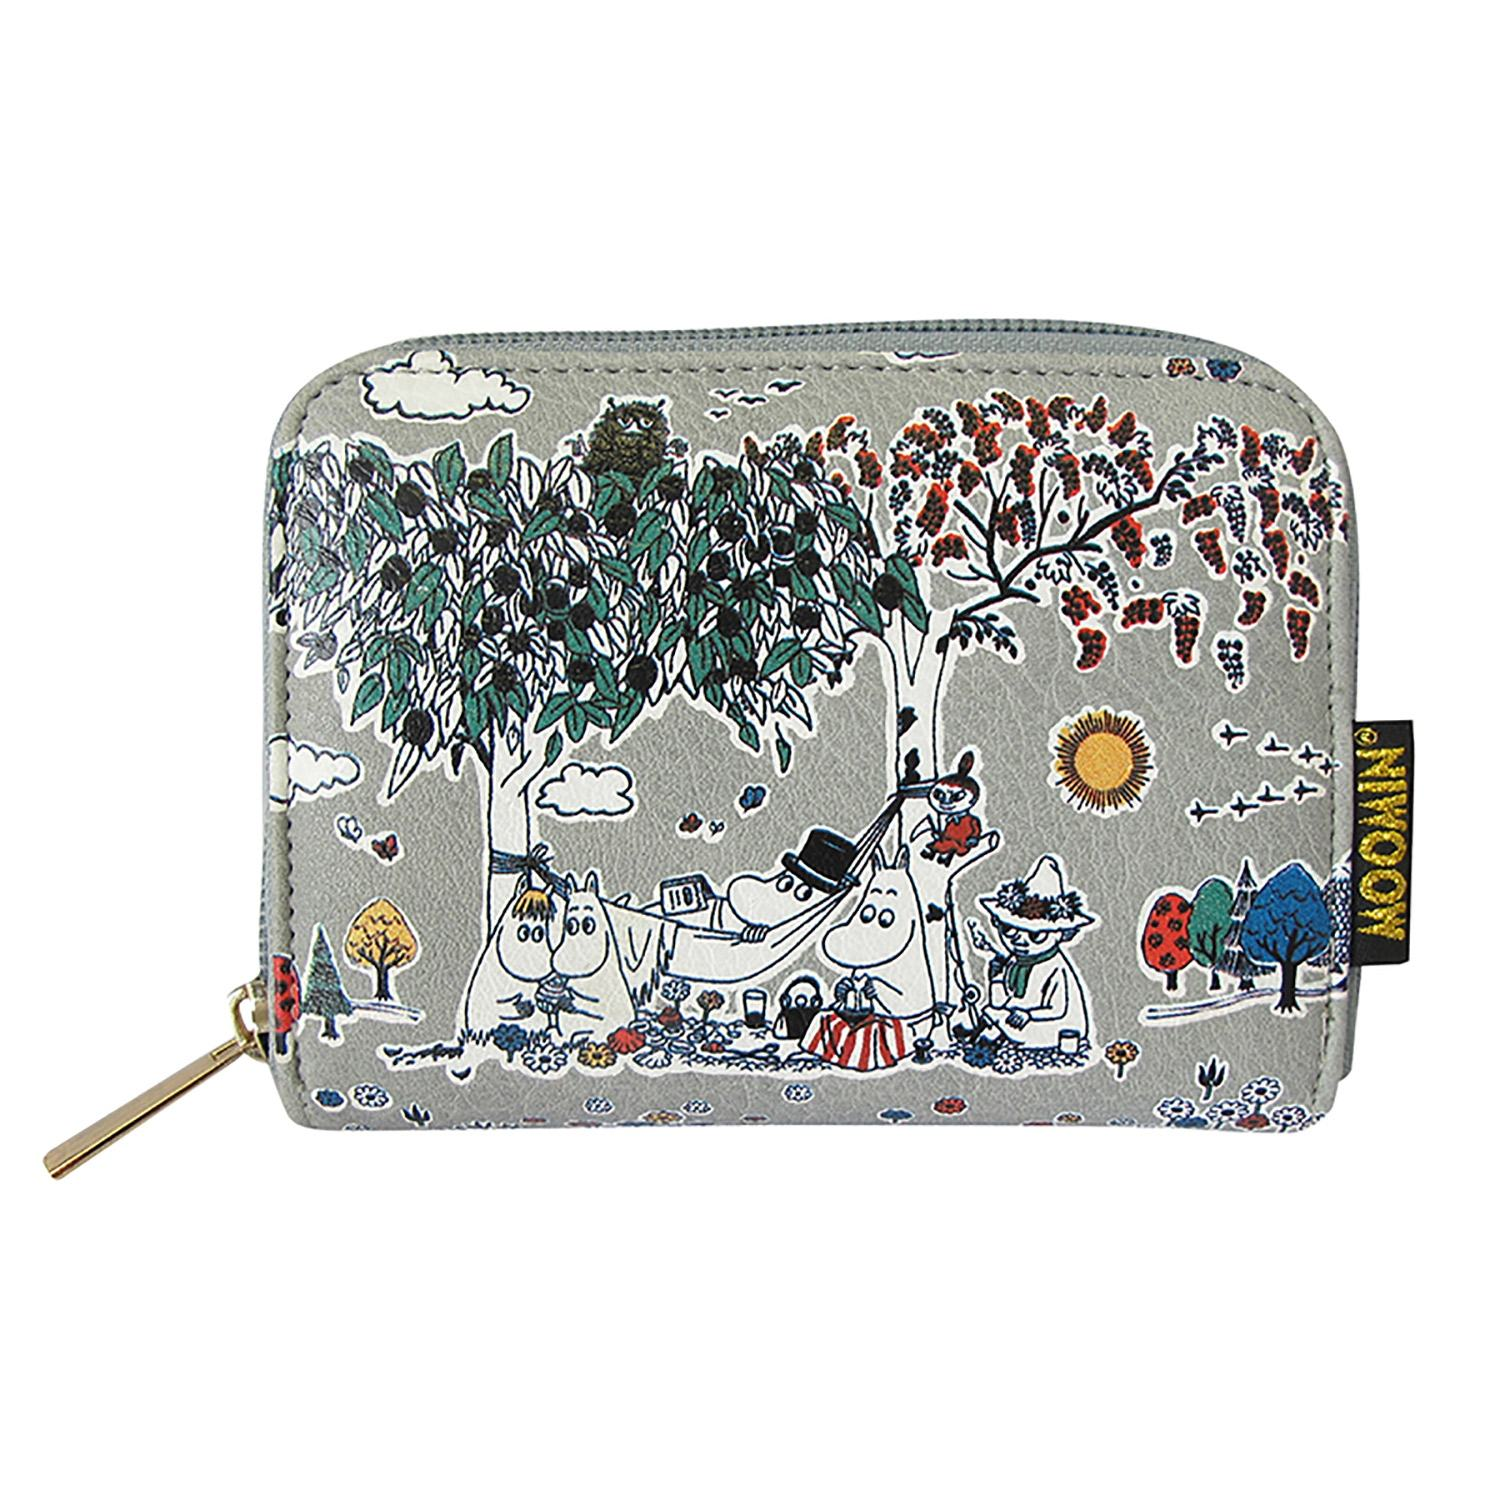 Disaster Designs Moomin Meadow Wallet Temptation Gifts